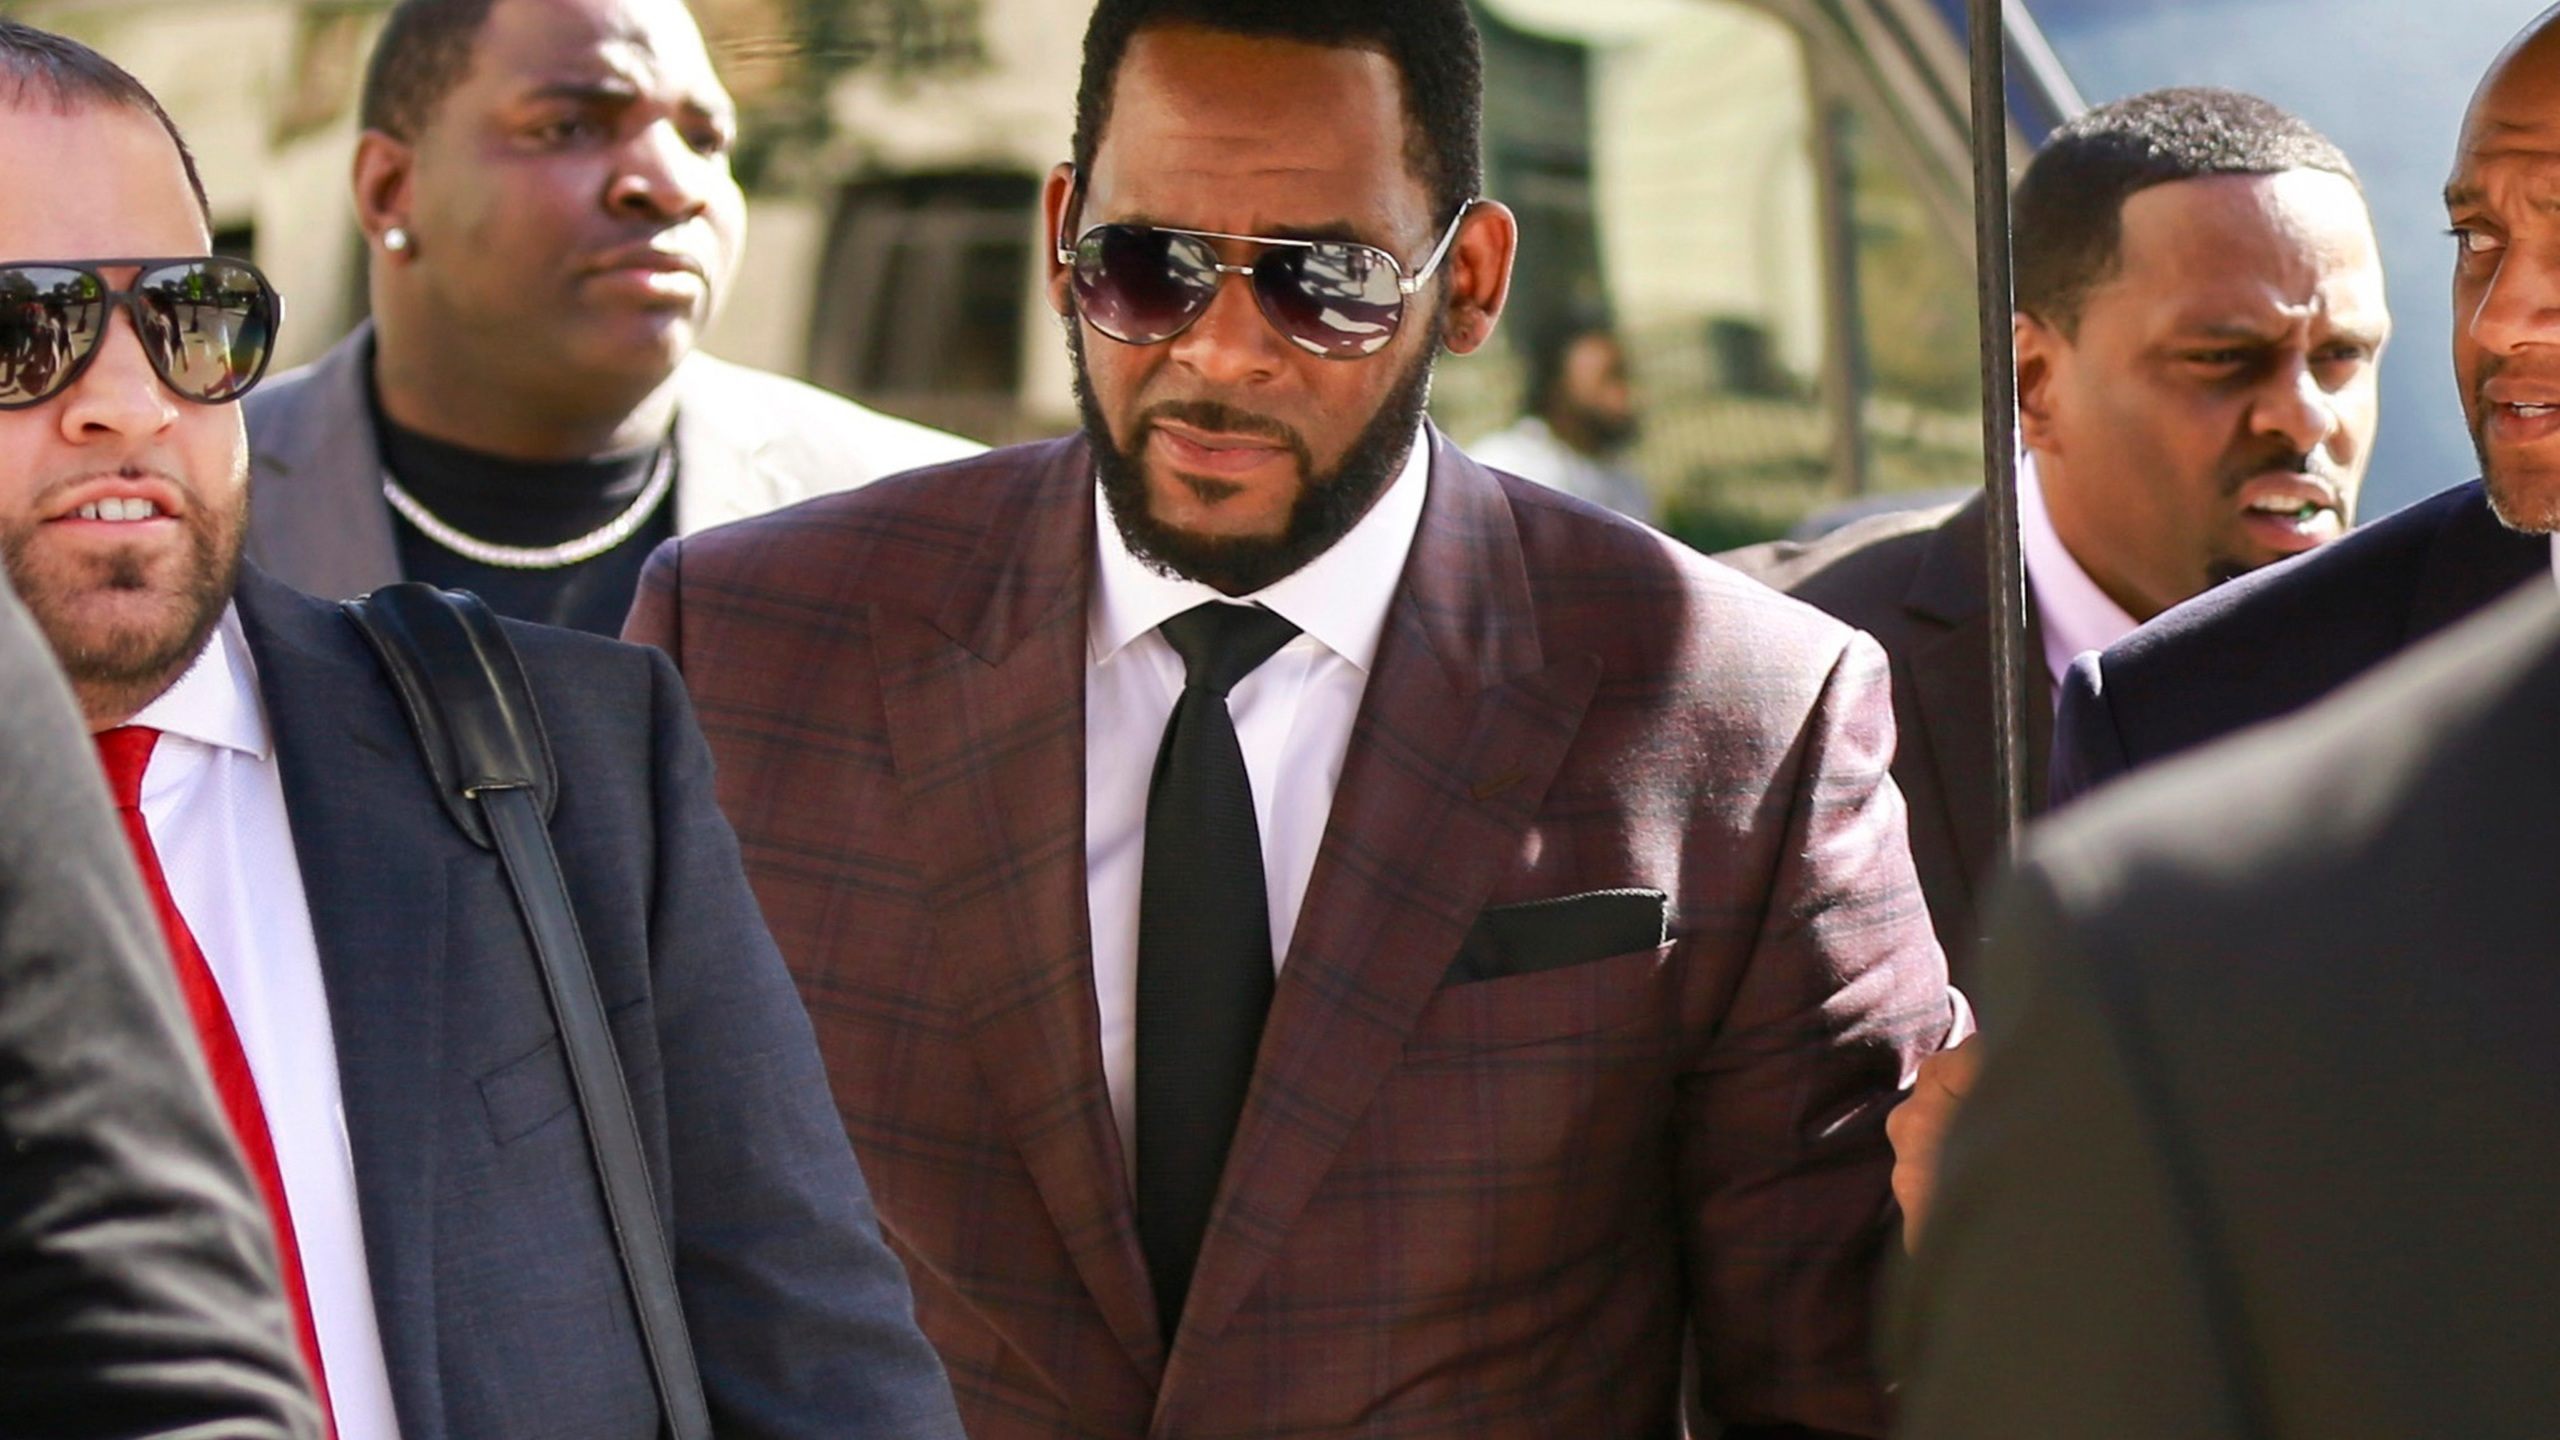 R&B singer R. Kelly, center, arrives at the Leighton Criminal Court building for an arraignment on sex-related felonies in Chicago on June 26, 2019. (Amr Alfiky/Associated Press)